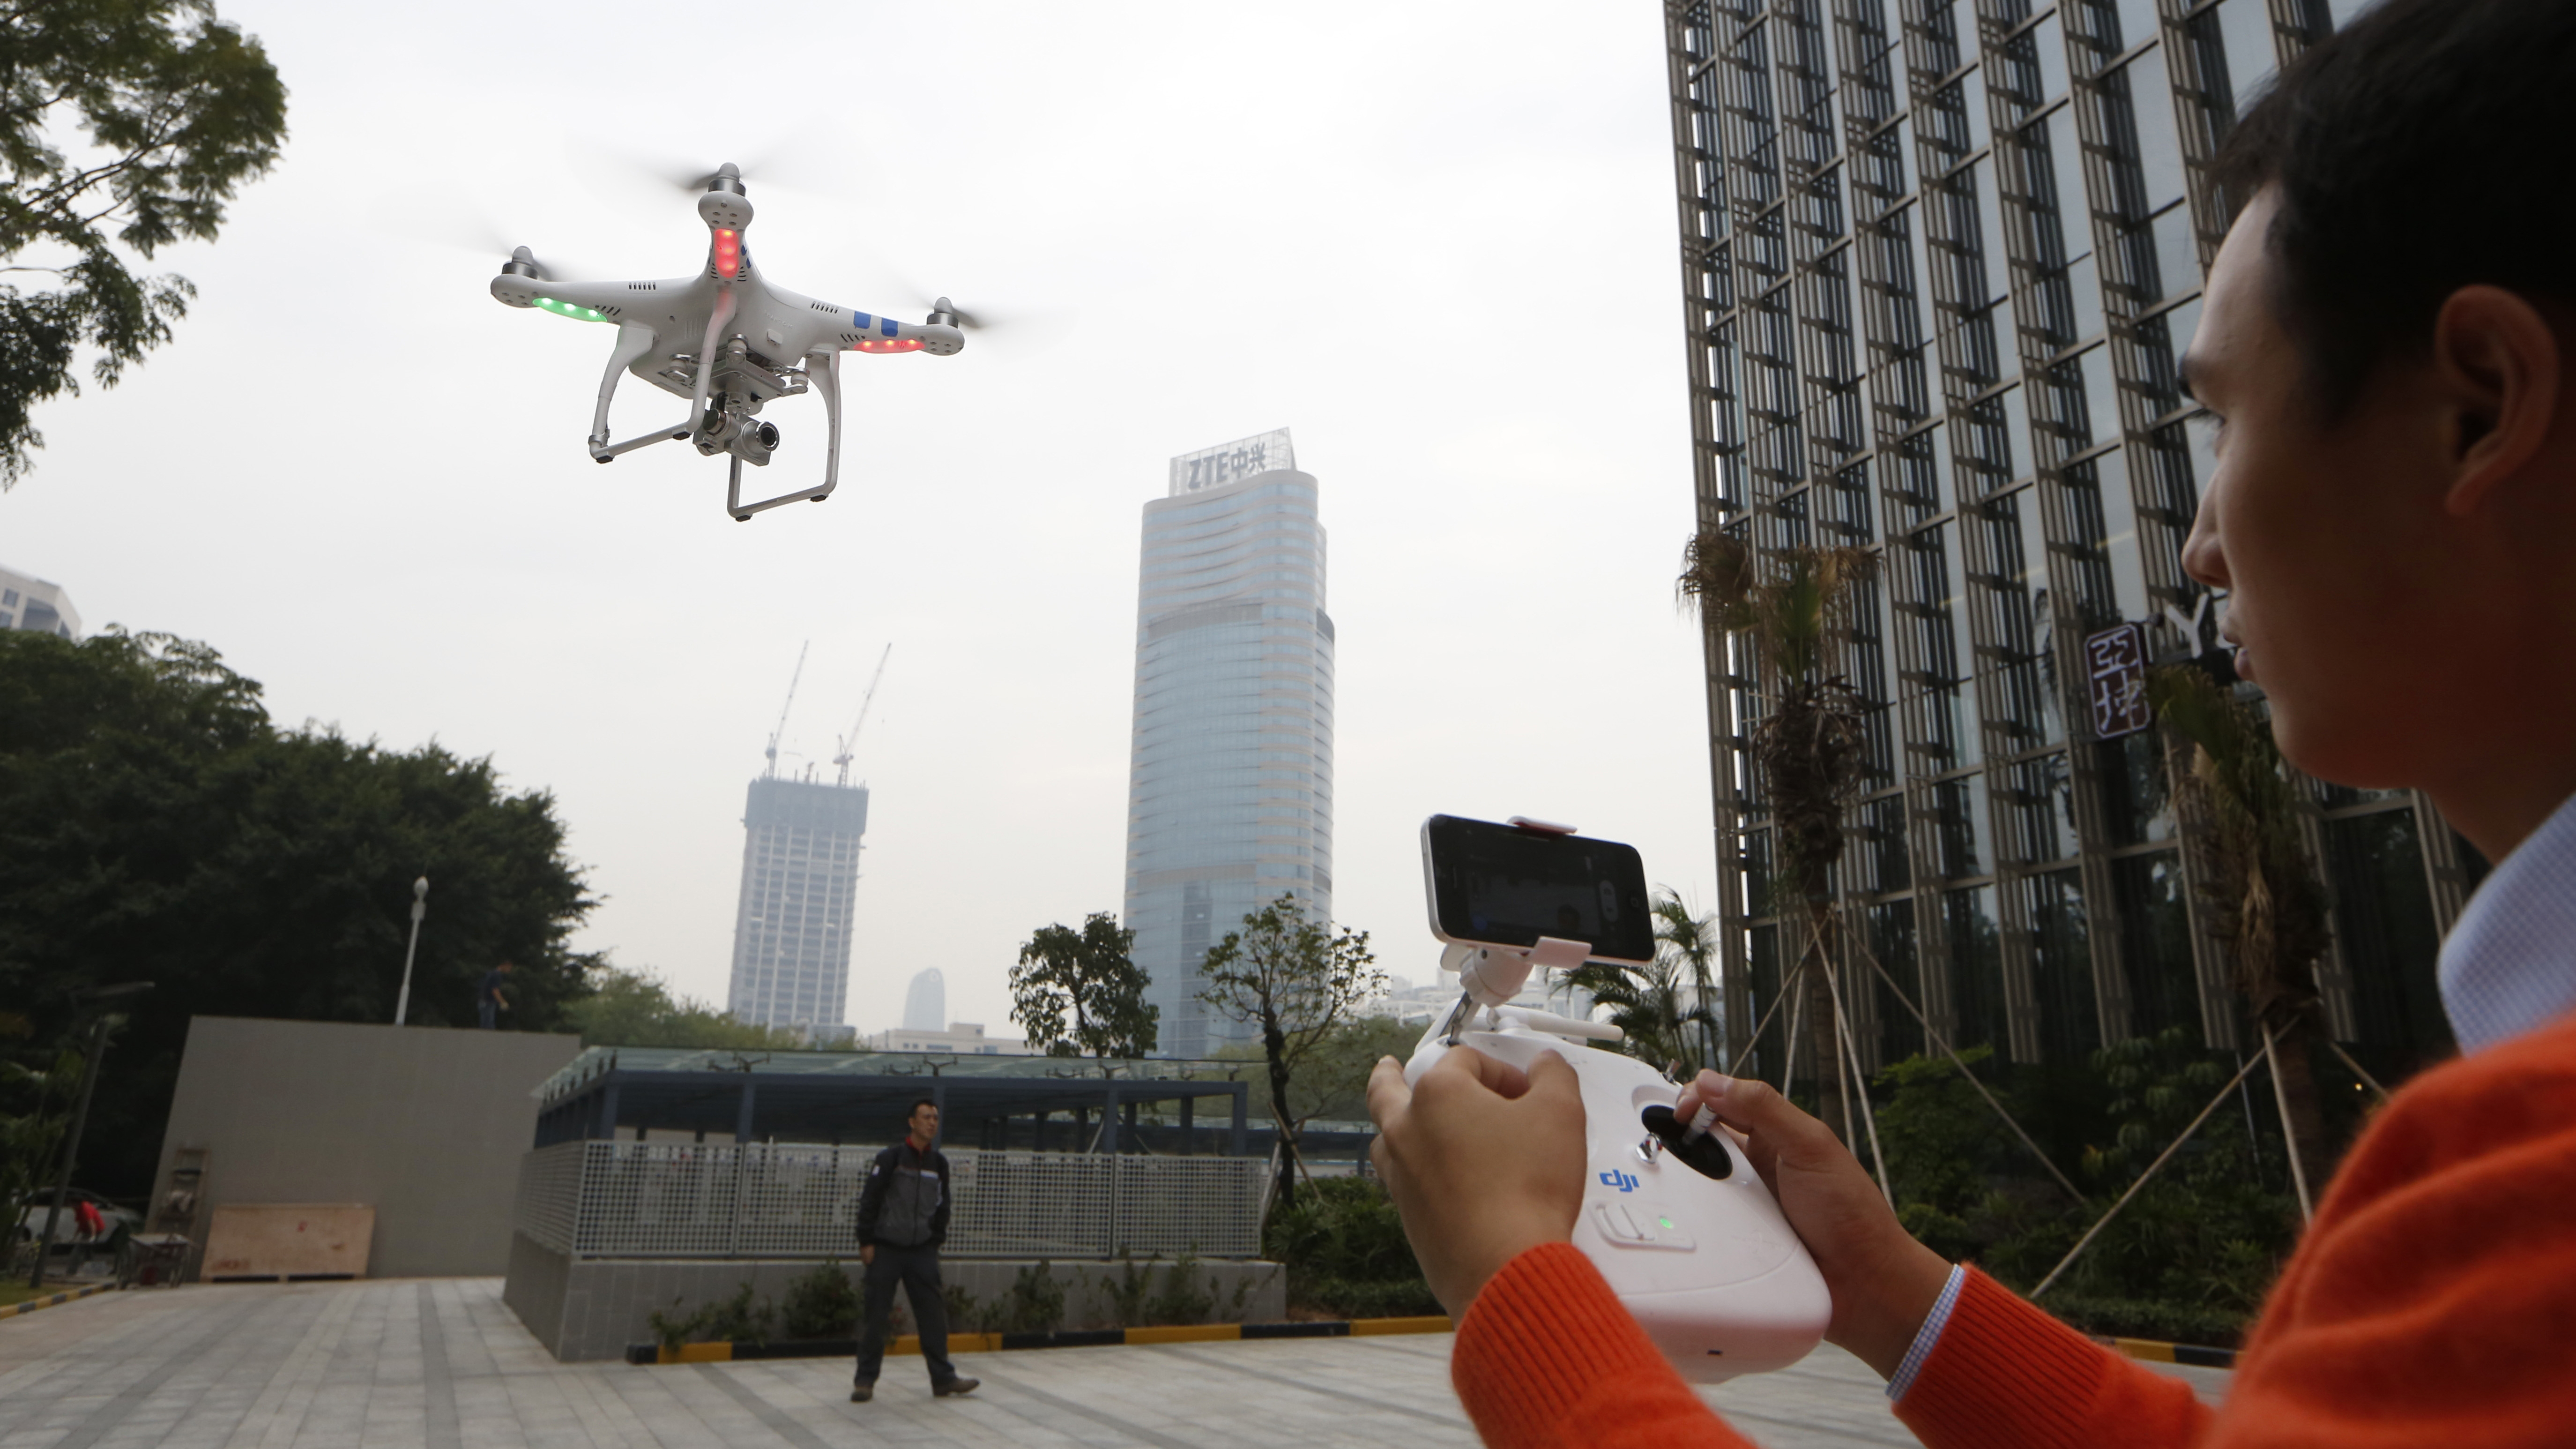 Now You Can Sign Up To Keep Drones Away From Your Property